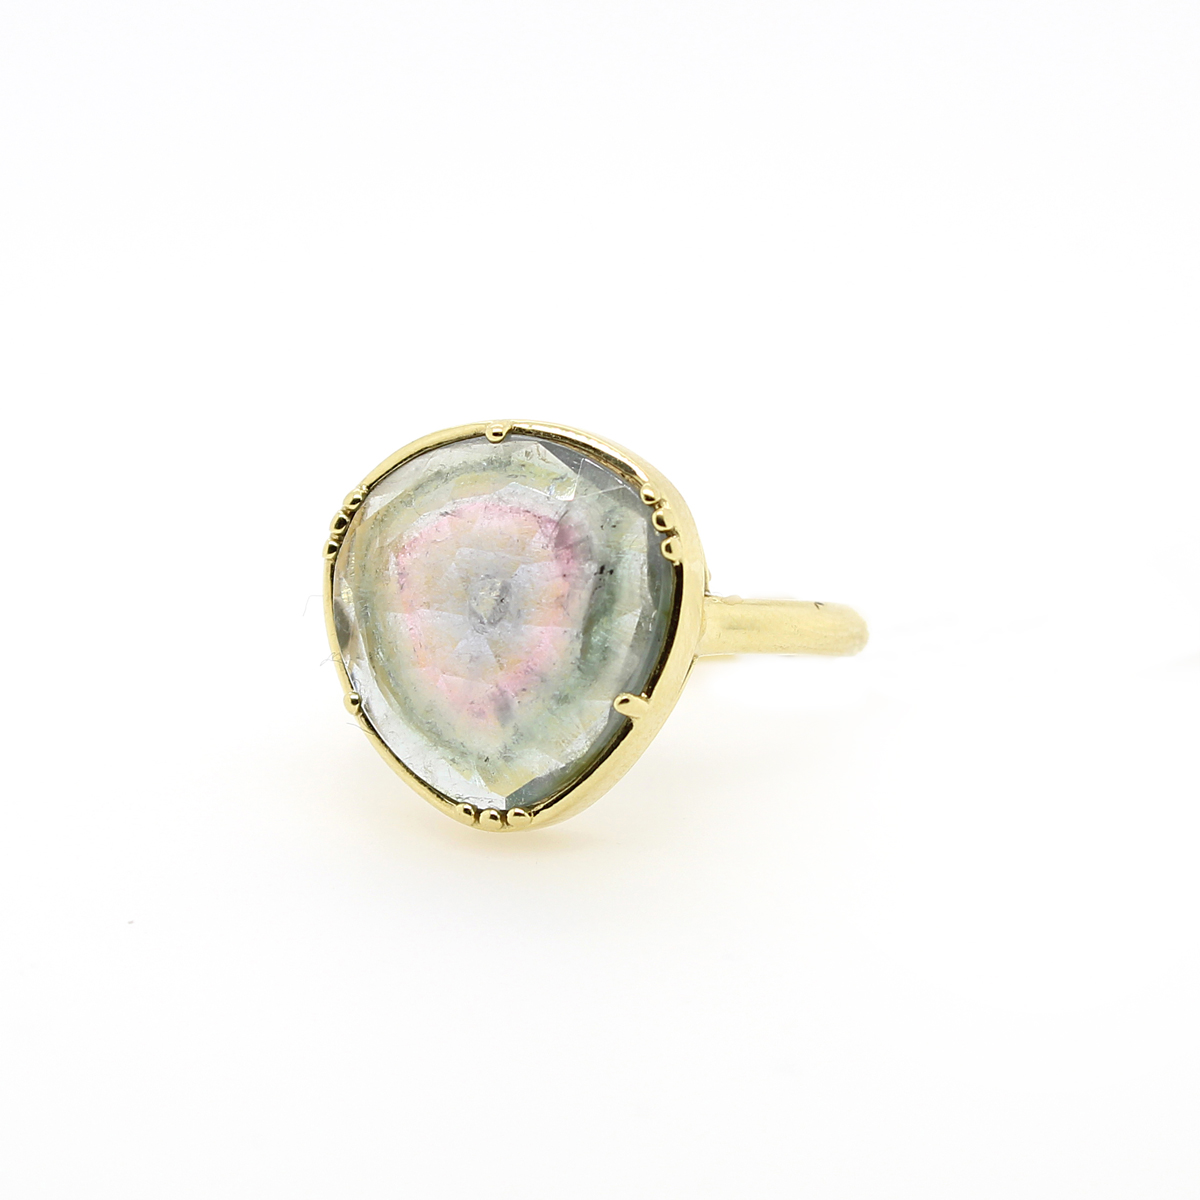 Lauren K 18 Karat Yellow Gold Freeform Watermelon Tourmaline Hope Ring